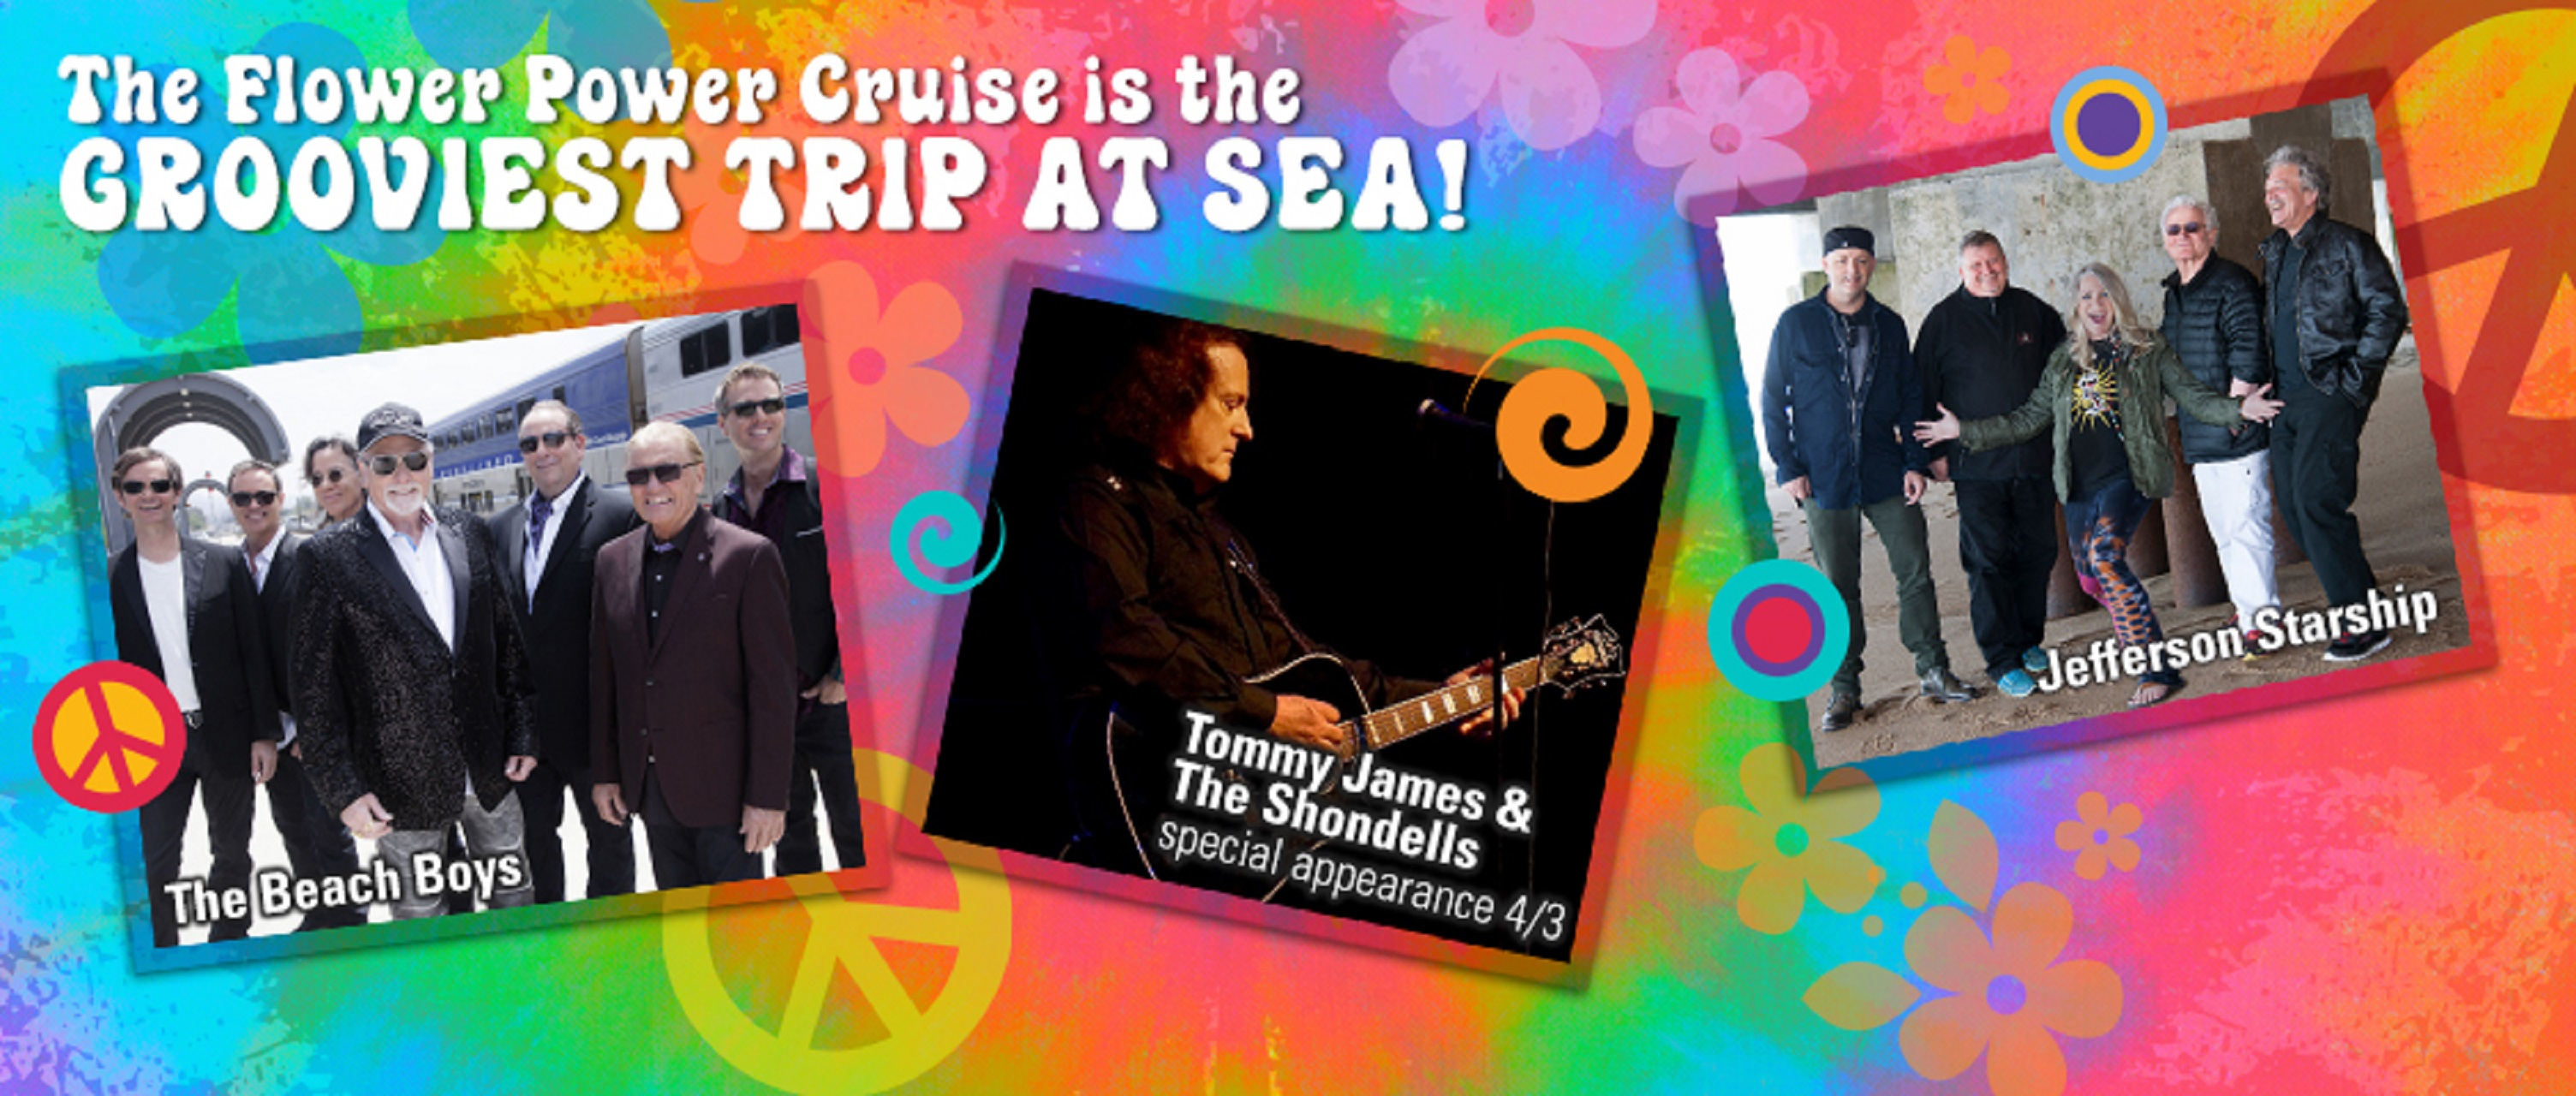 Grand Funk Railroad Flower Power Cruise Feb. 28-March 1